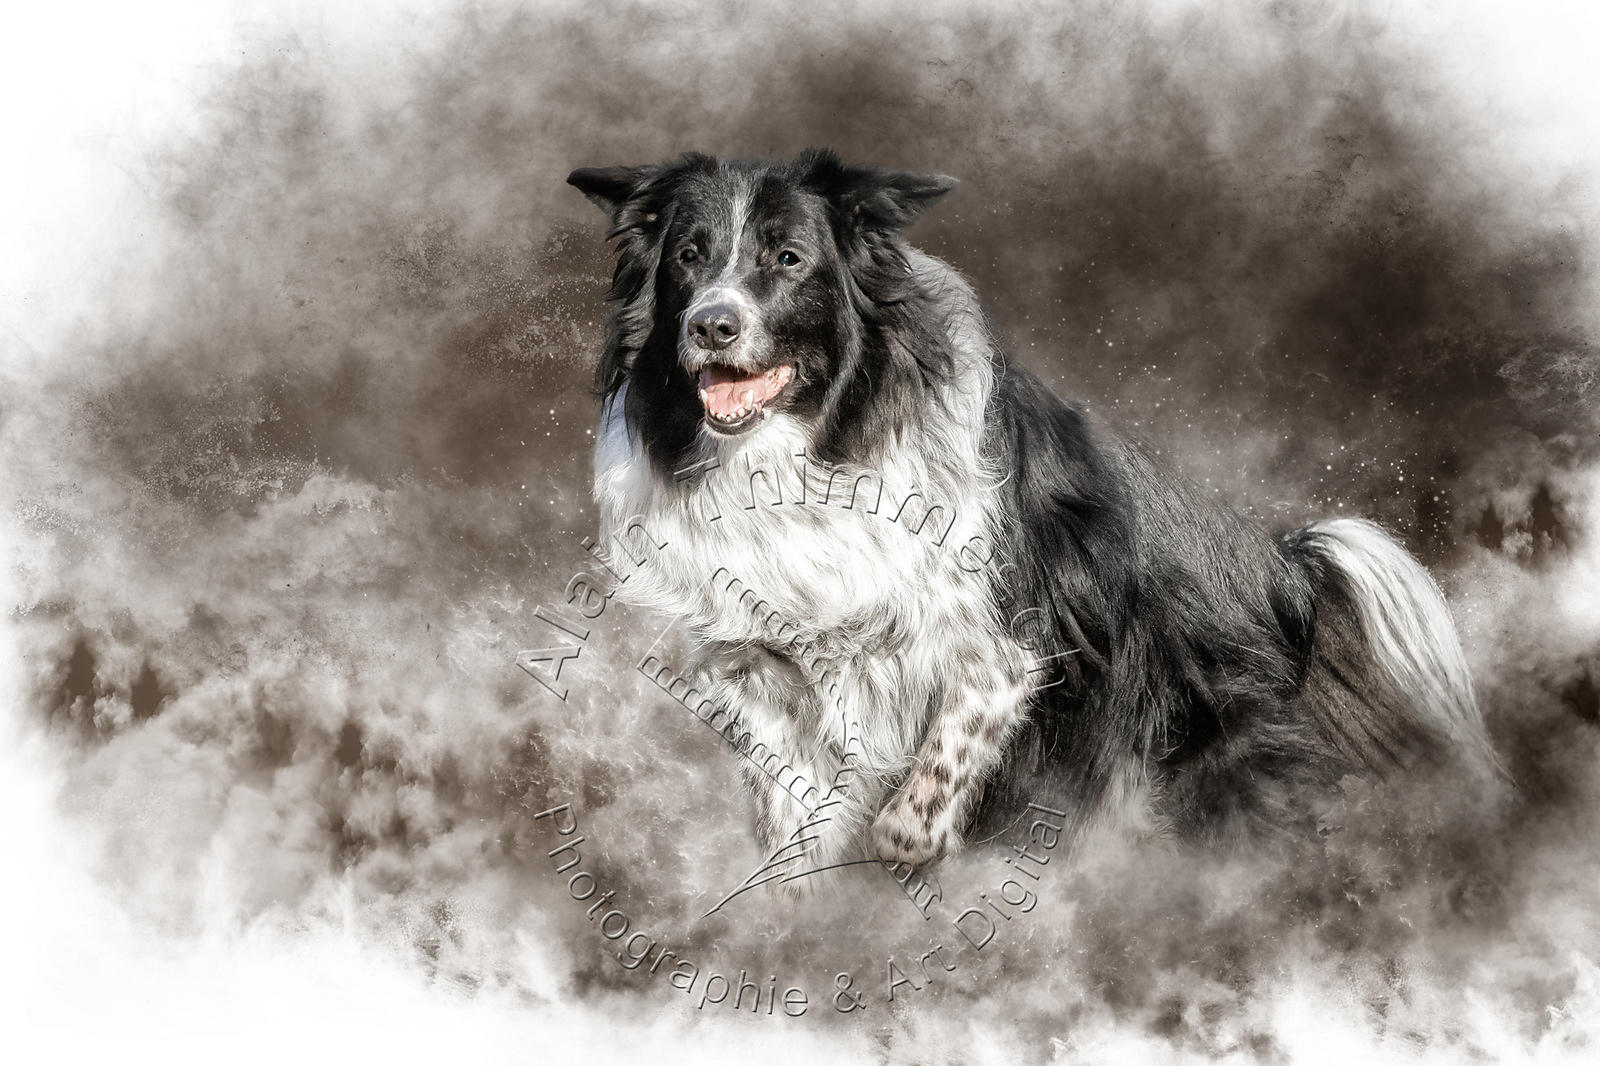 Art-Digital-Alain-Thimmesch-Chien-977